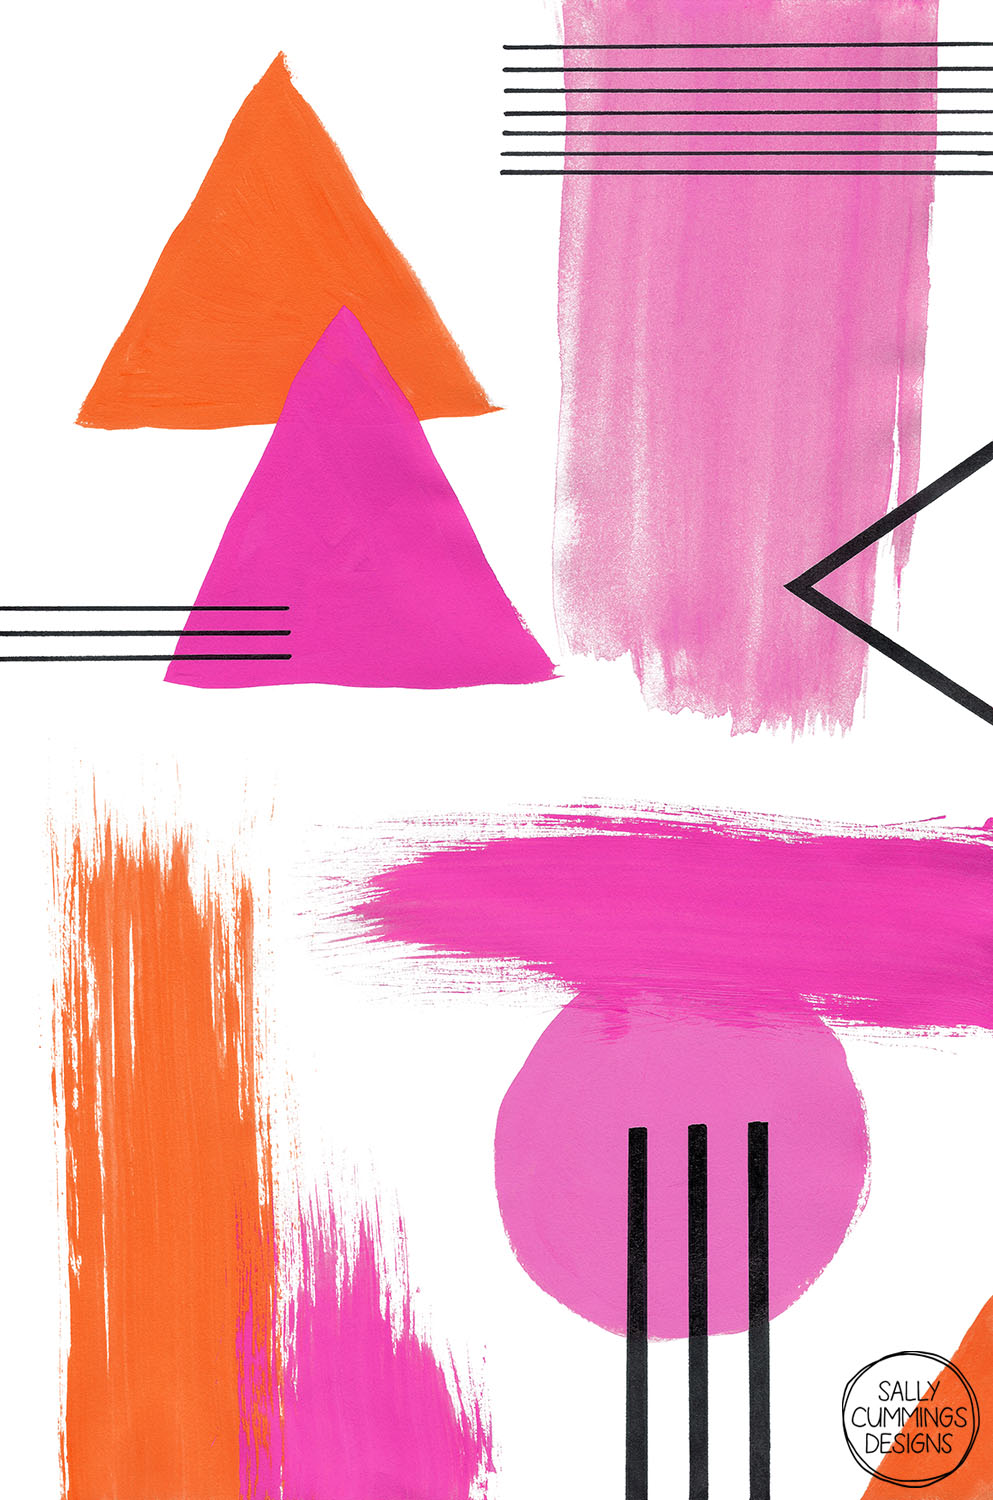 Sally Cummings Designs - Abstract Composition in Pink and Orange